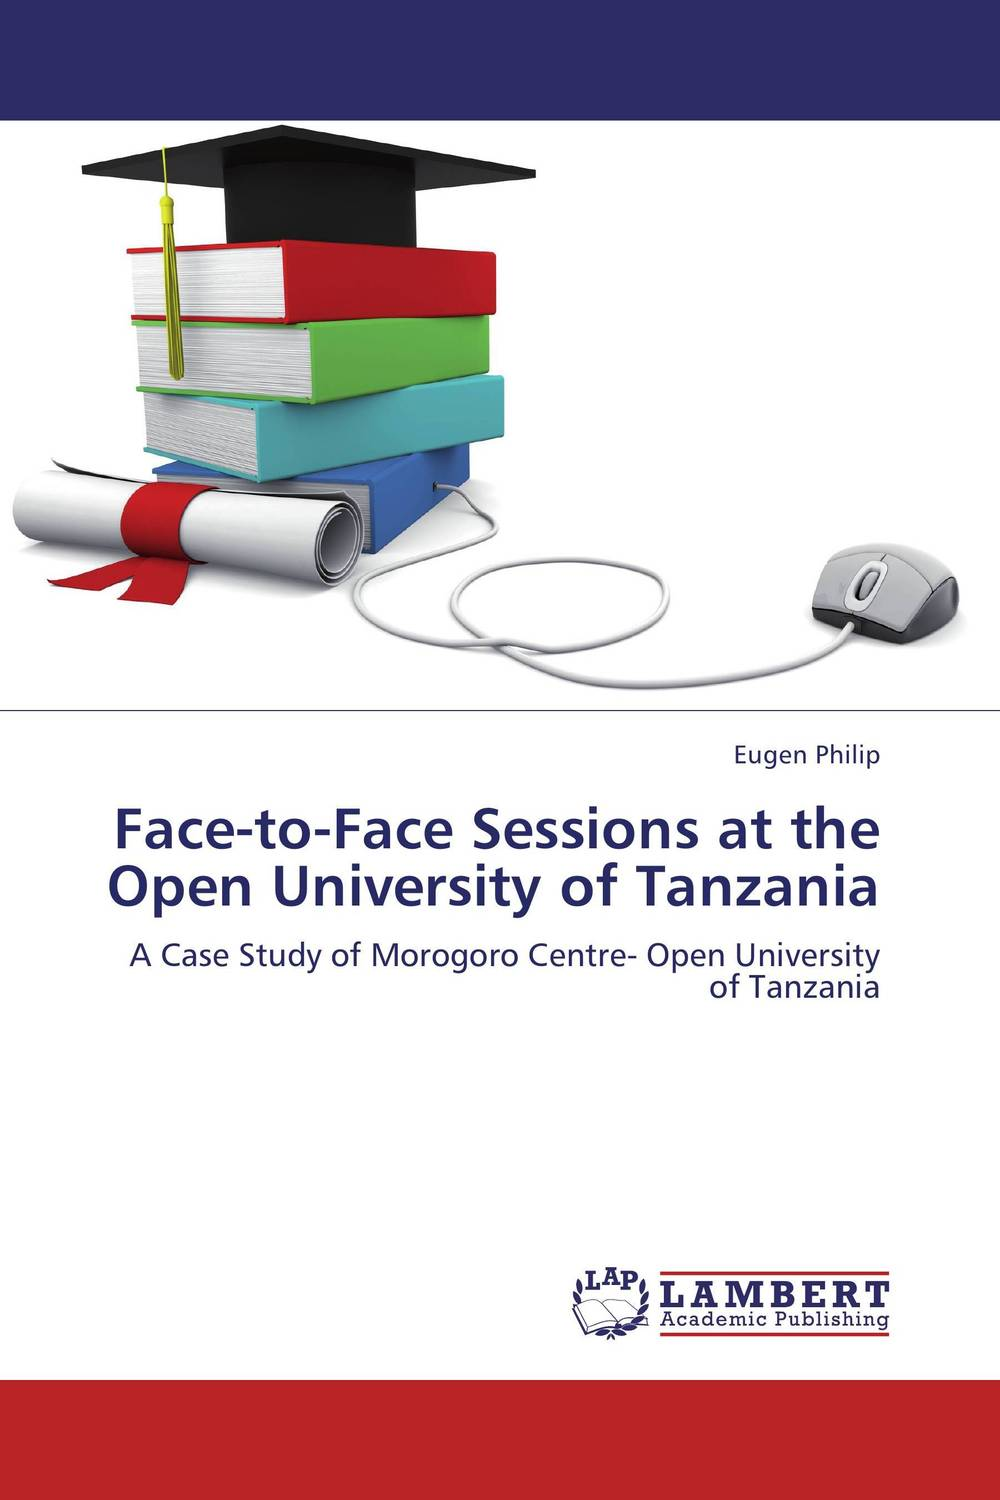 Face-to-Face Sessions at the Open University of Tanzania dieting practices among ahfad university for women students